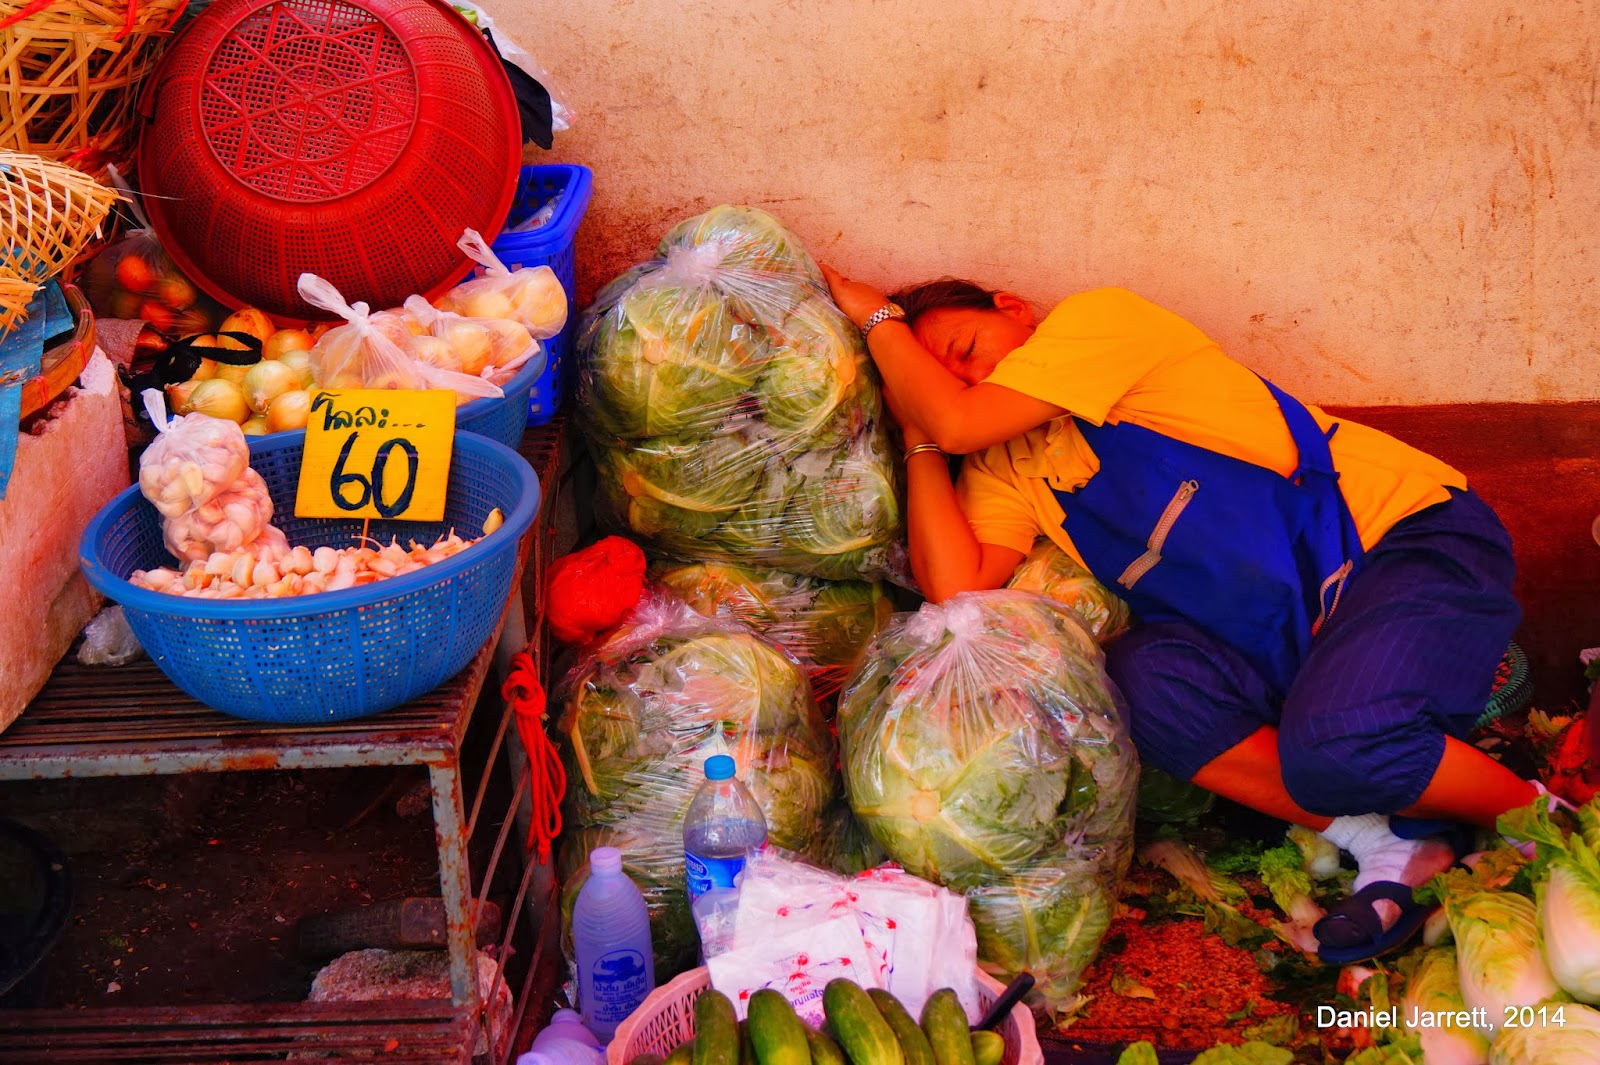 Chiang Rai Woman Sleeping